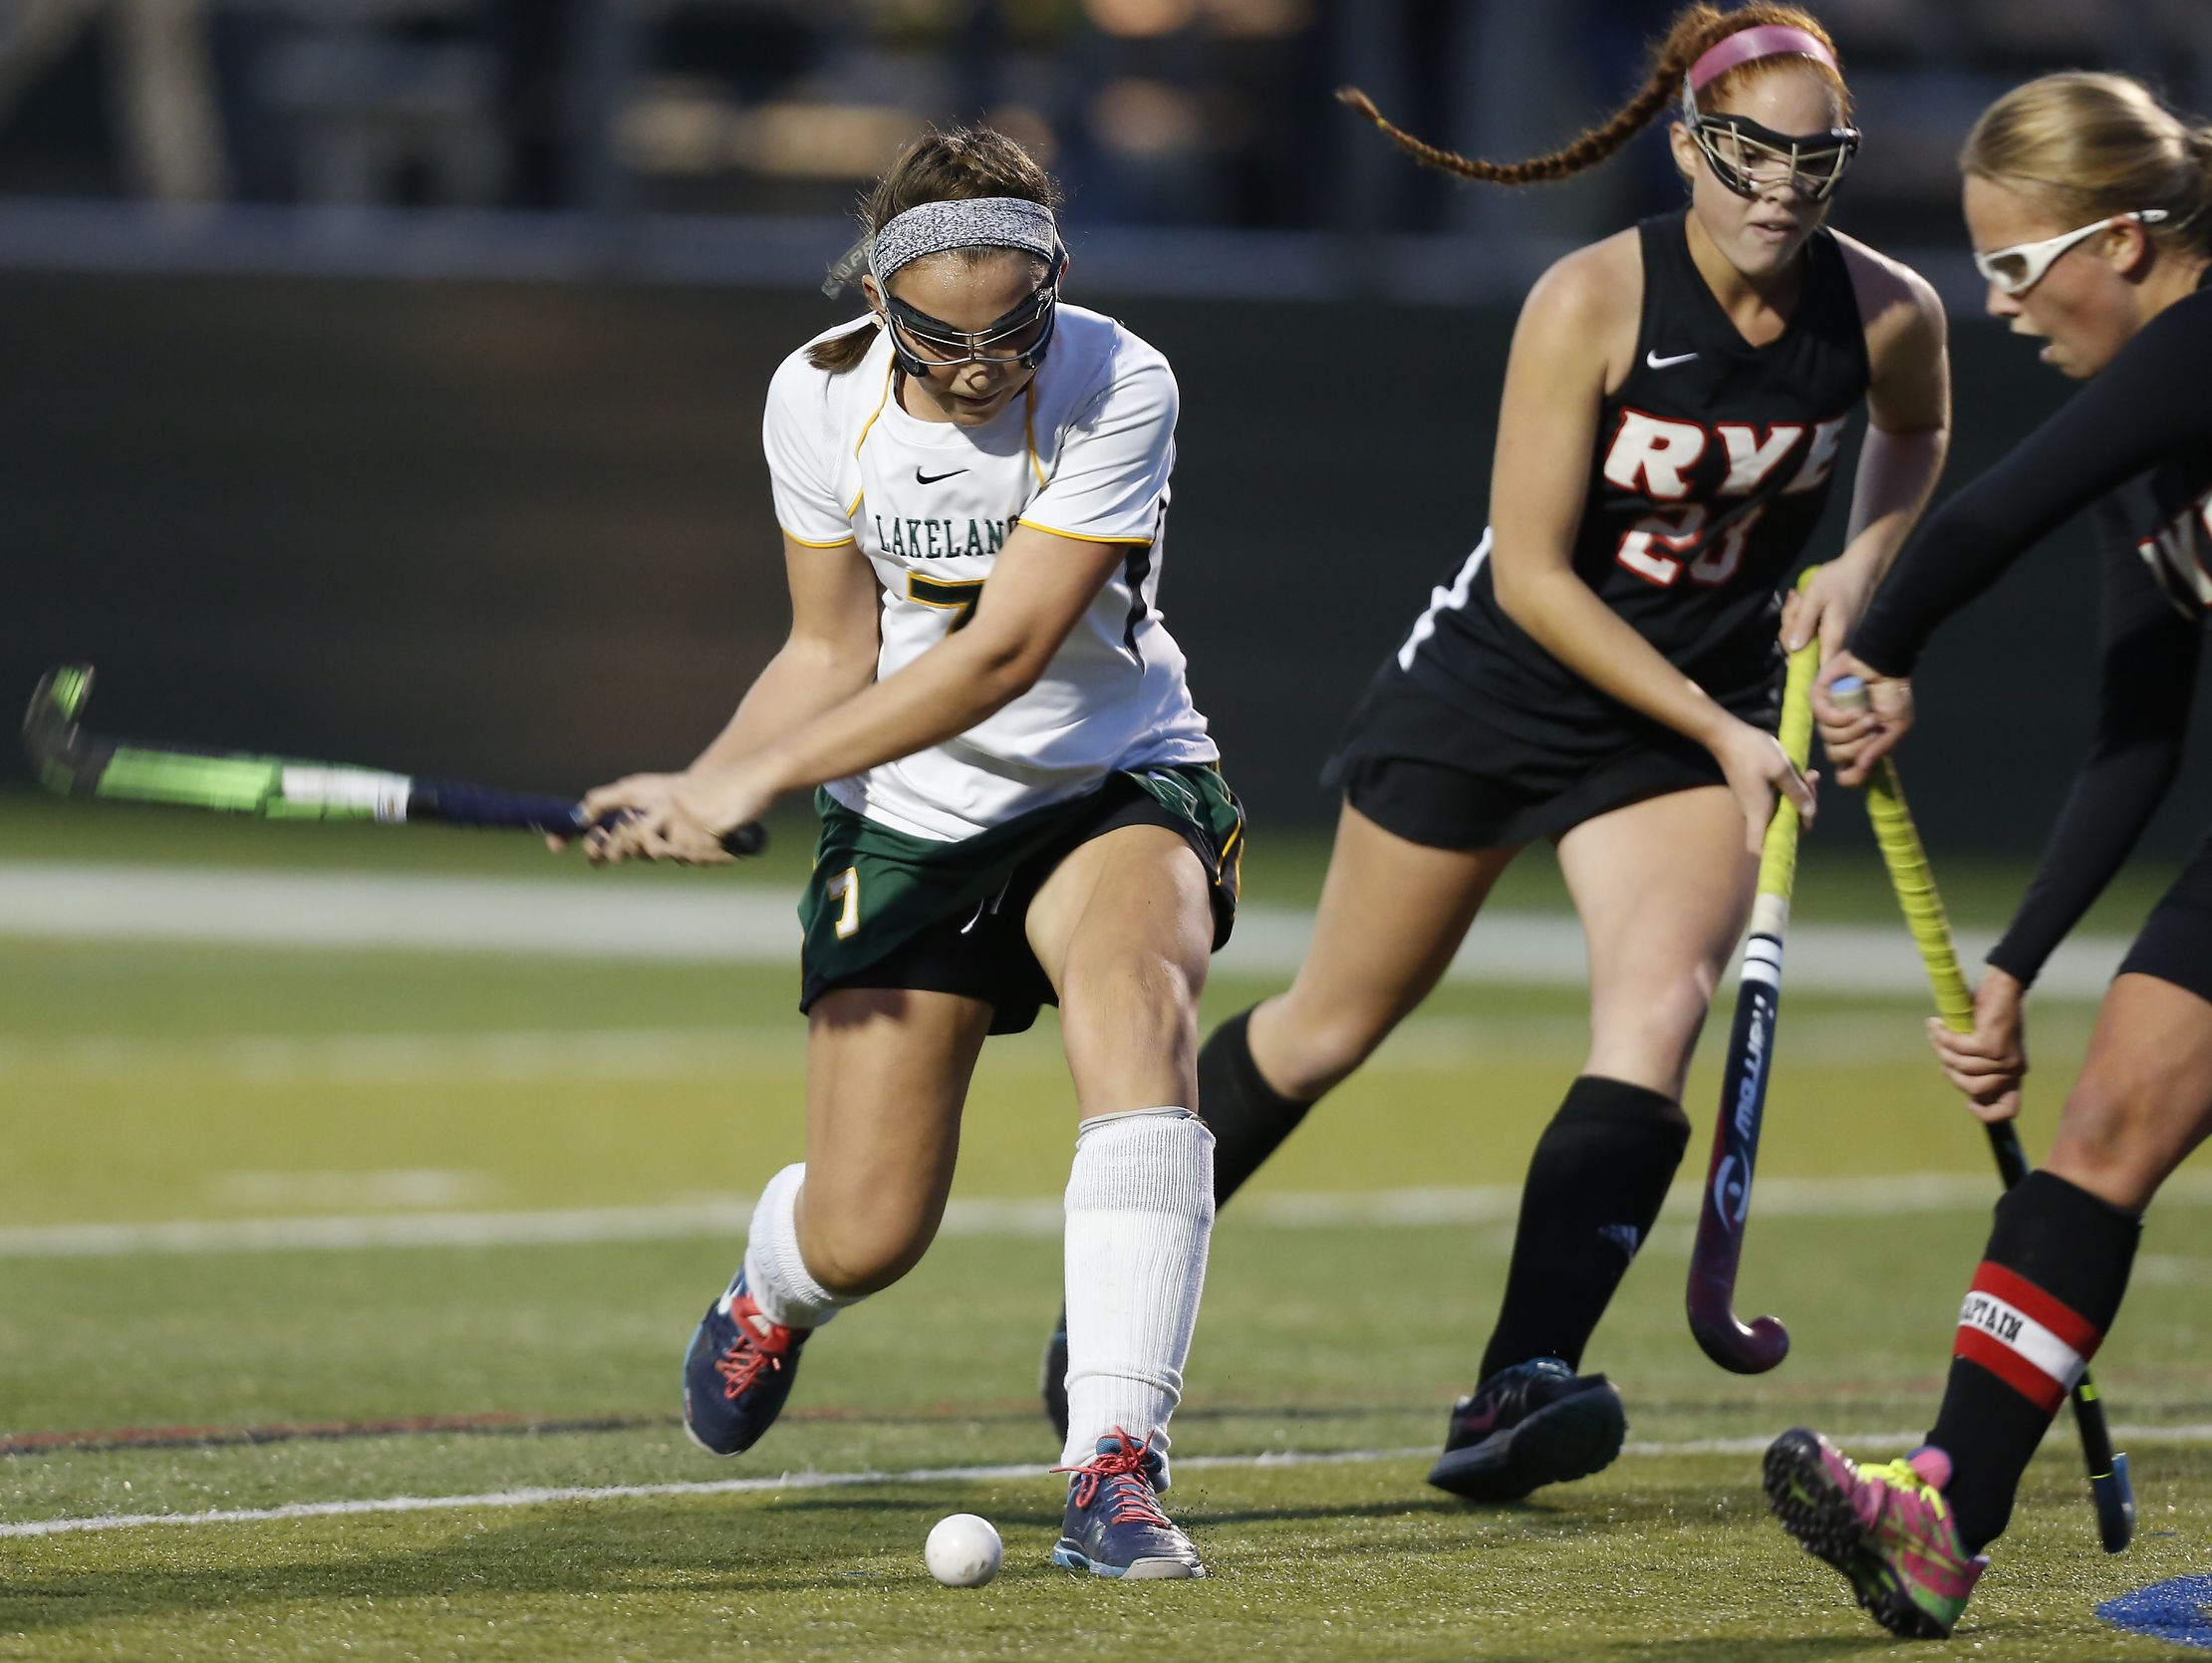 Lakeland's Caroline Cahil (7) scores from a corner during their 4-1 win over Rye in the Class B field hockey sectiion finals at Brewster High School on Tuesday, November 1, 2016.